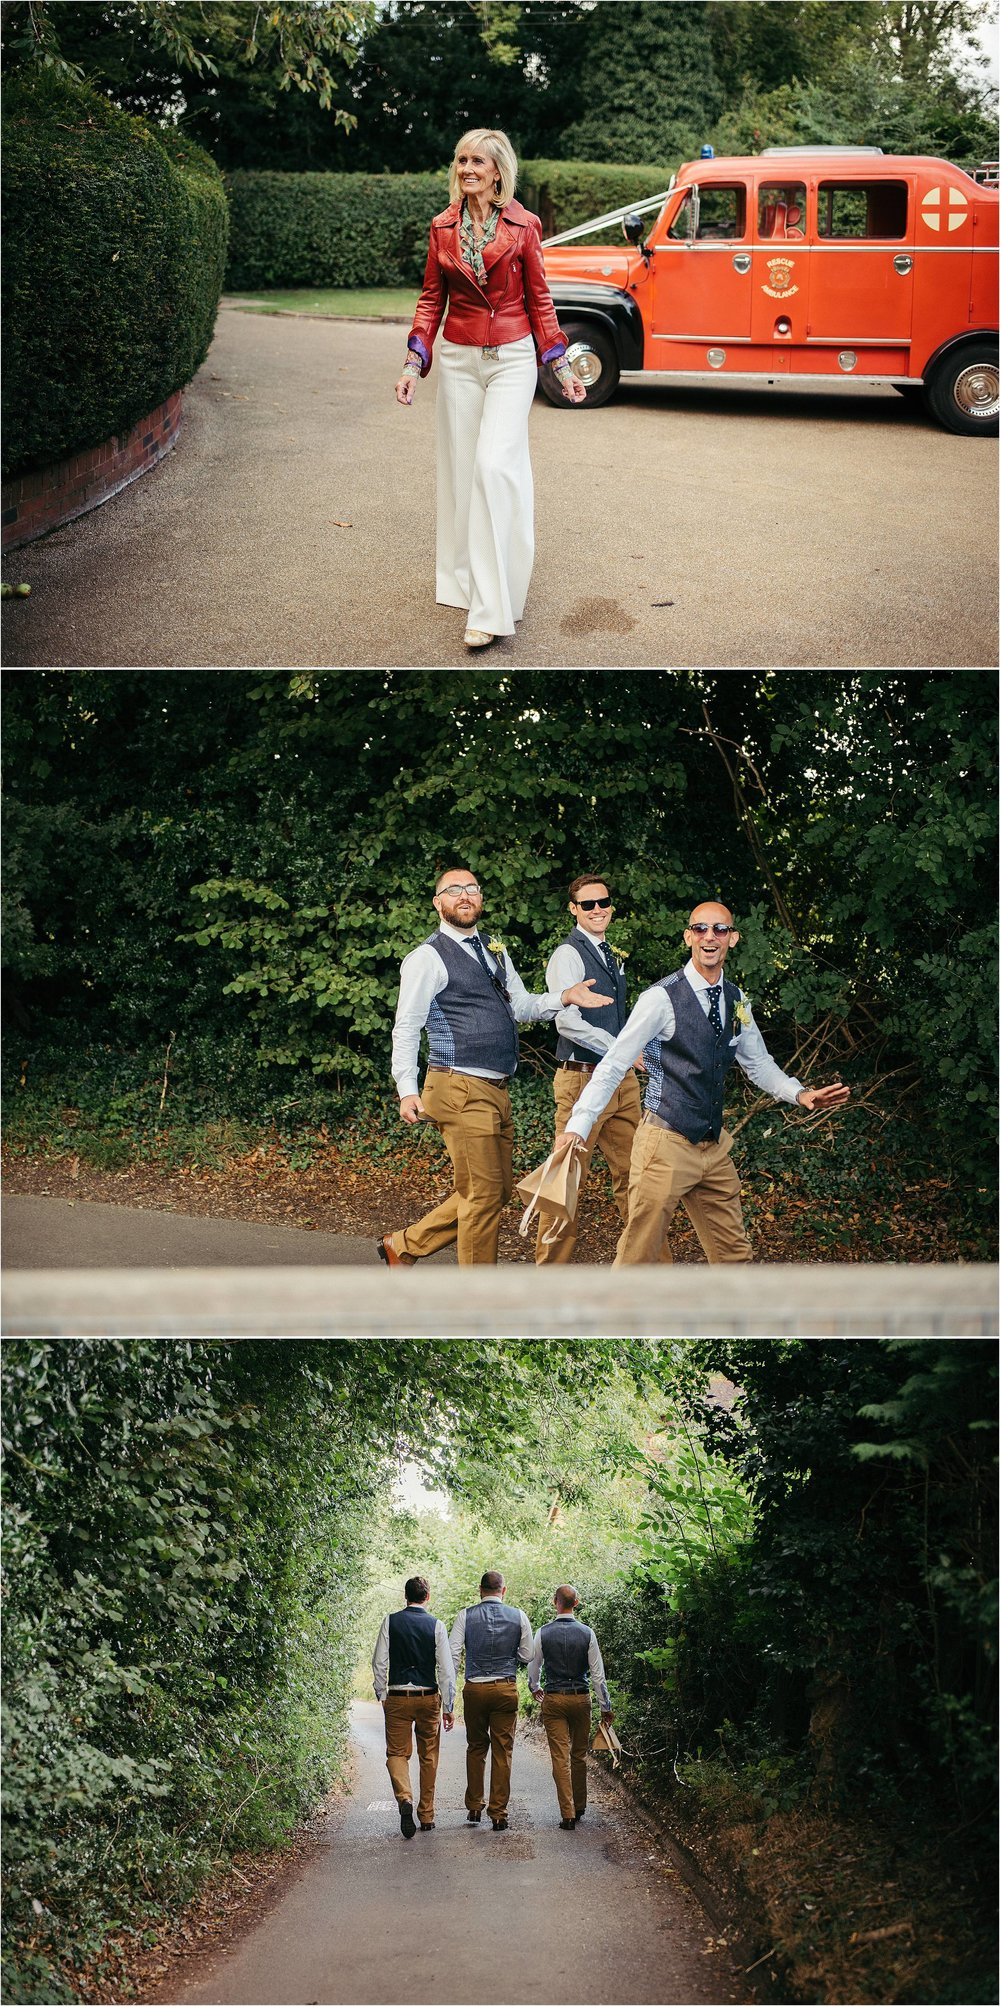 The Crooked Billet Pub Oxfordshire Wedding Photography_0025.jpg